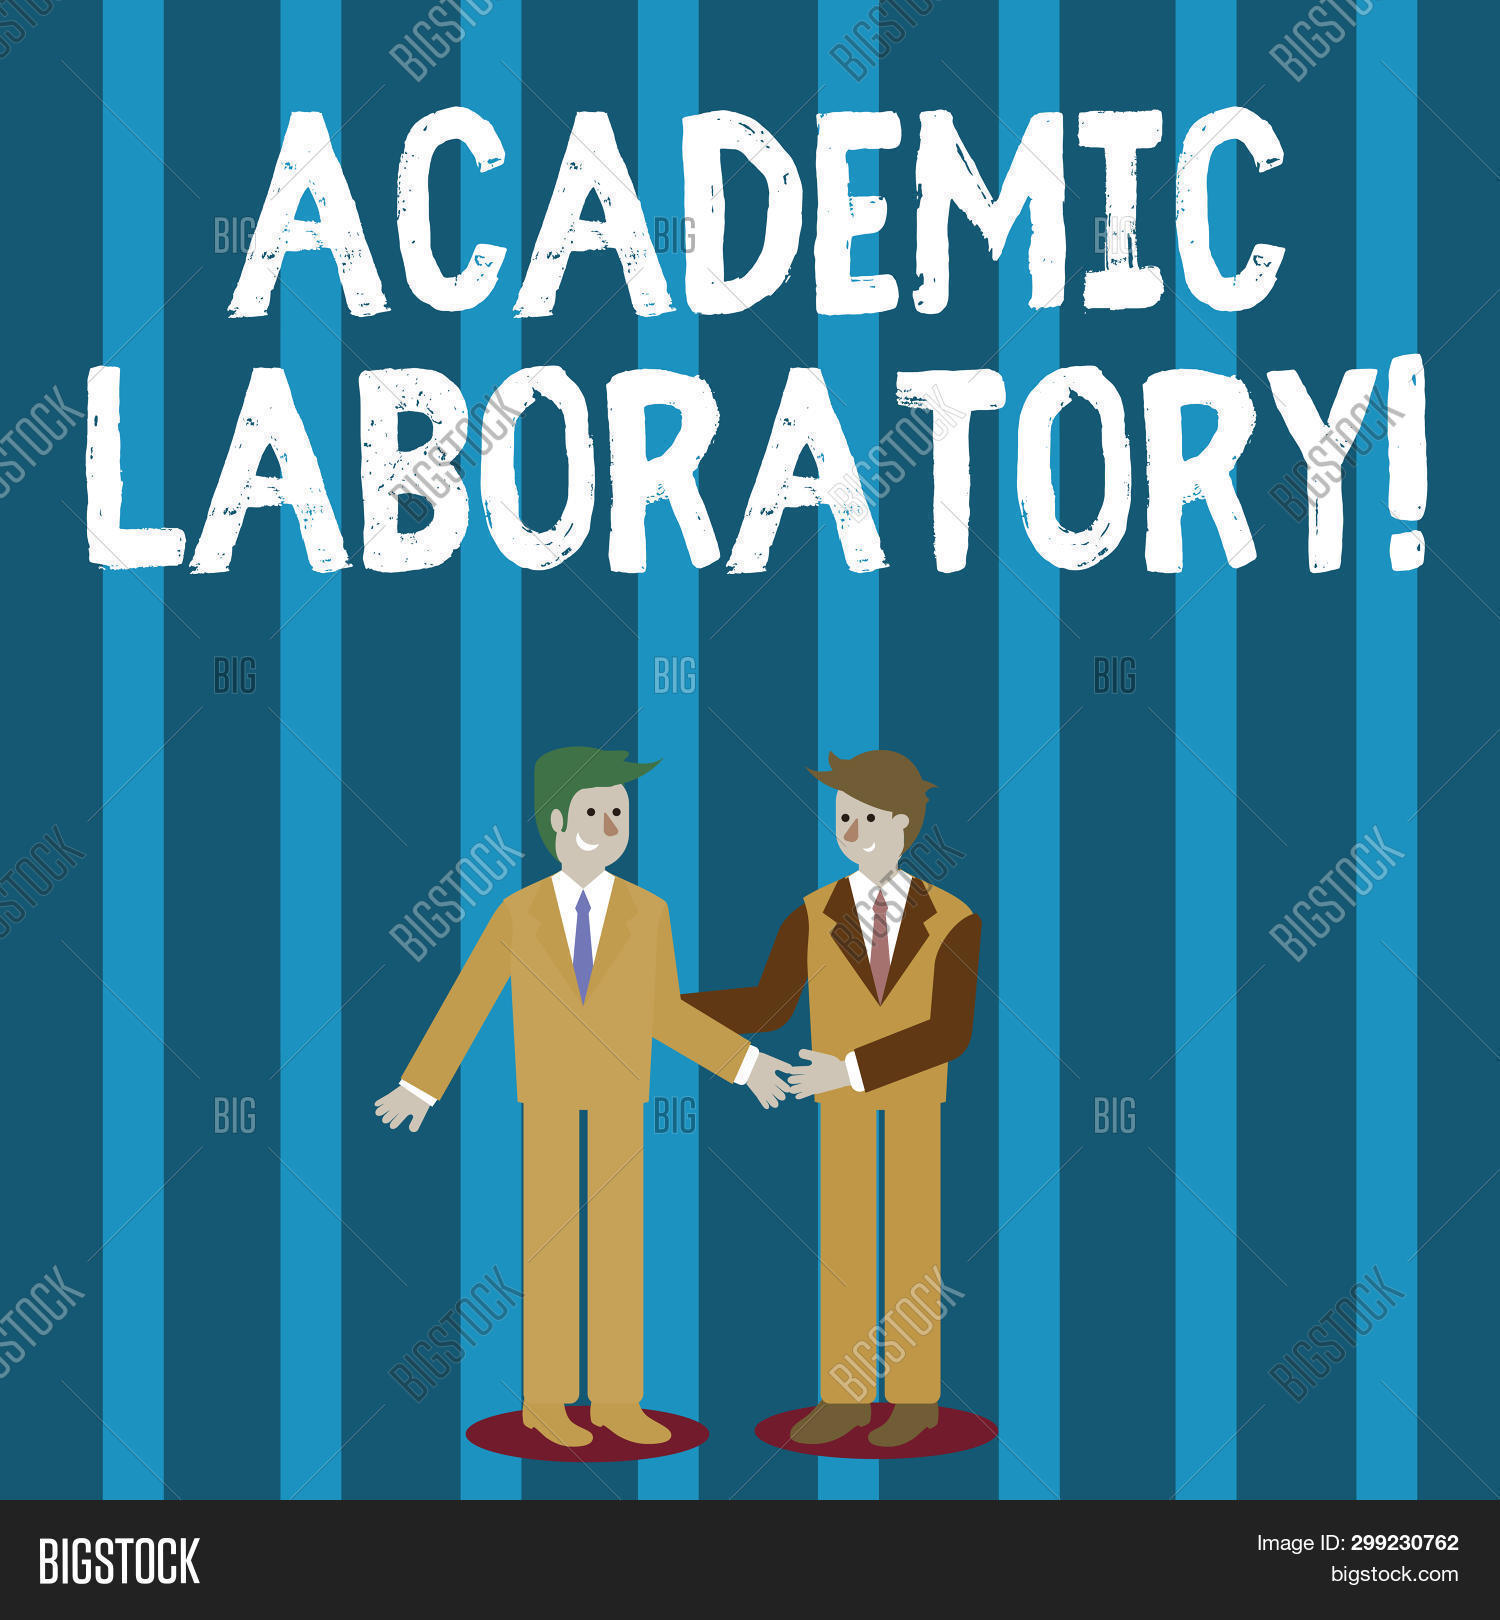 academic,academy,adjusting,analyzing,beaker,bio,biology,chemistry,components,concentrating,discovery,education,engineering,equipment,experiment,flask,fluid,formula,fumes,healthcare,invention,knowledge,lab,laboratory,learning,liquid,medical,mentor,microscope,organic,pharmaceutical,pharmacy,project,research,science,scientific,scientist,student,studying,substance,technology,test,testing,toxic,tube,university,working